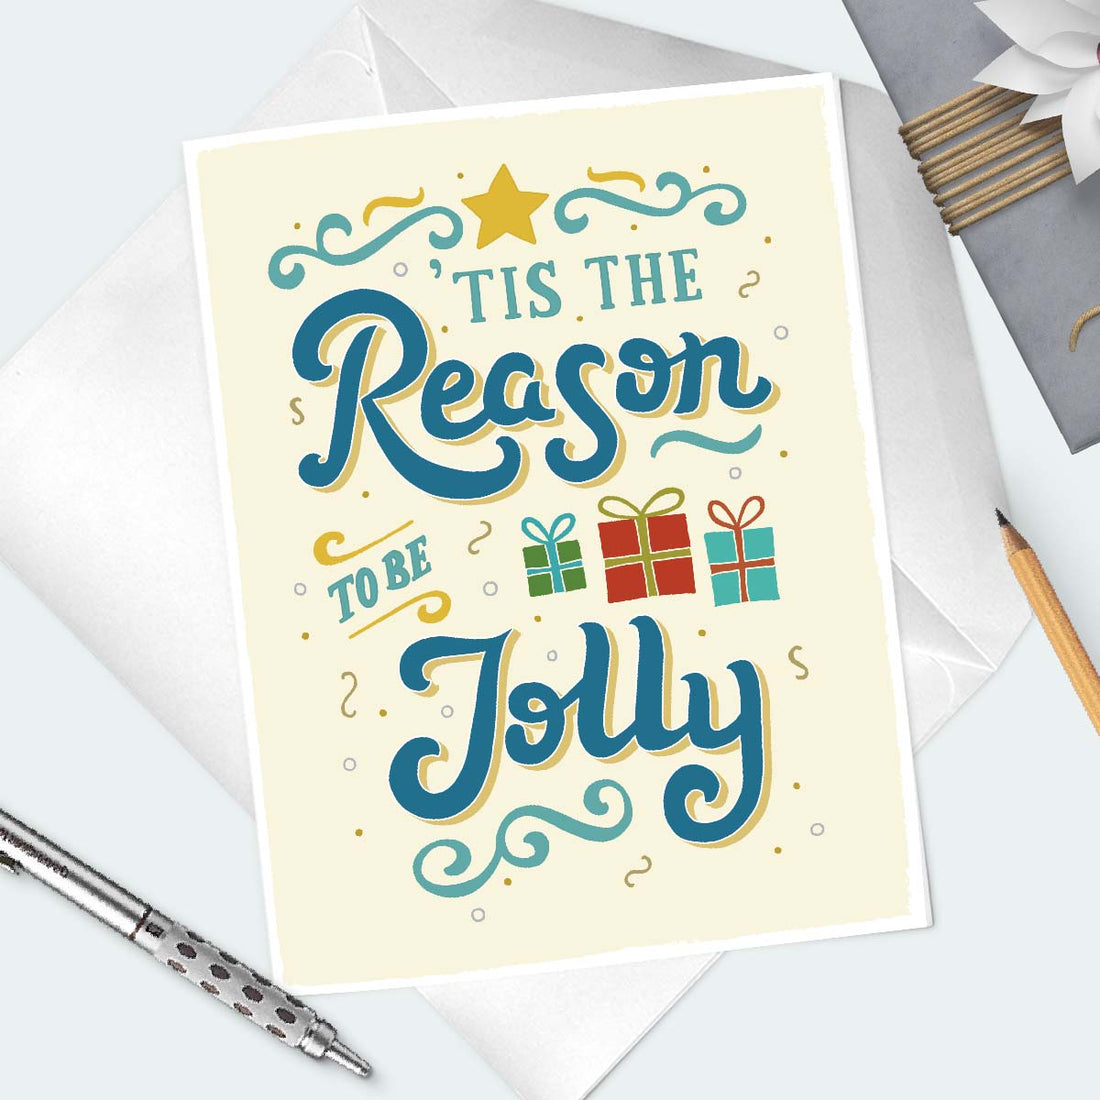 Tis The Reason Holiday Greeting Card - The Makers